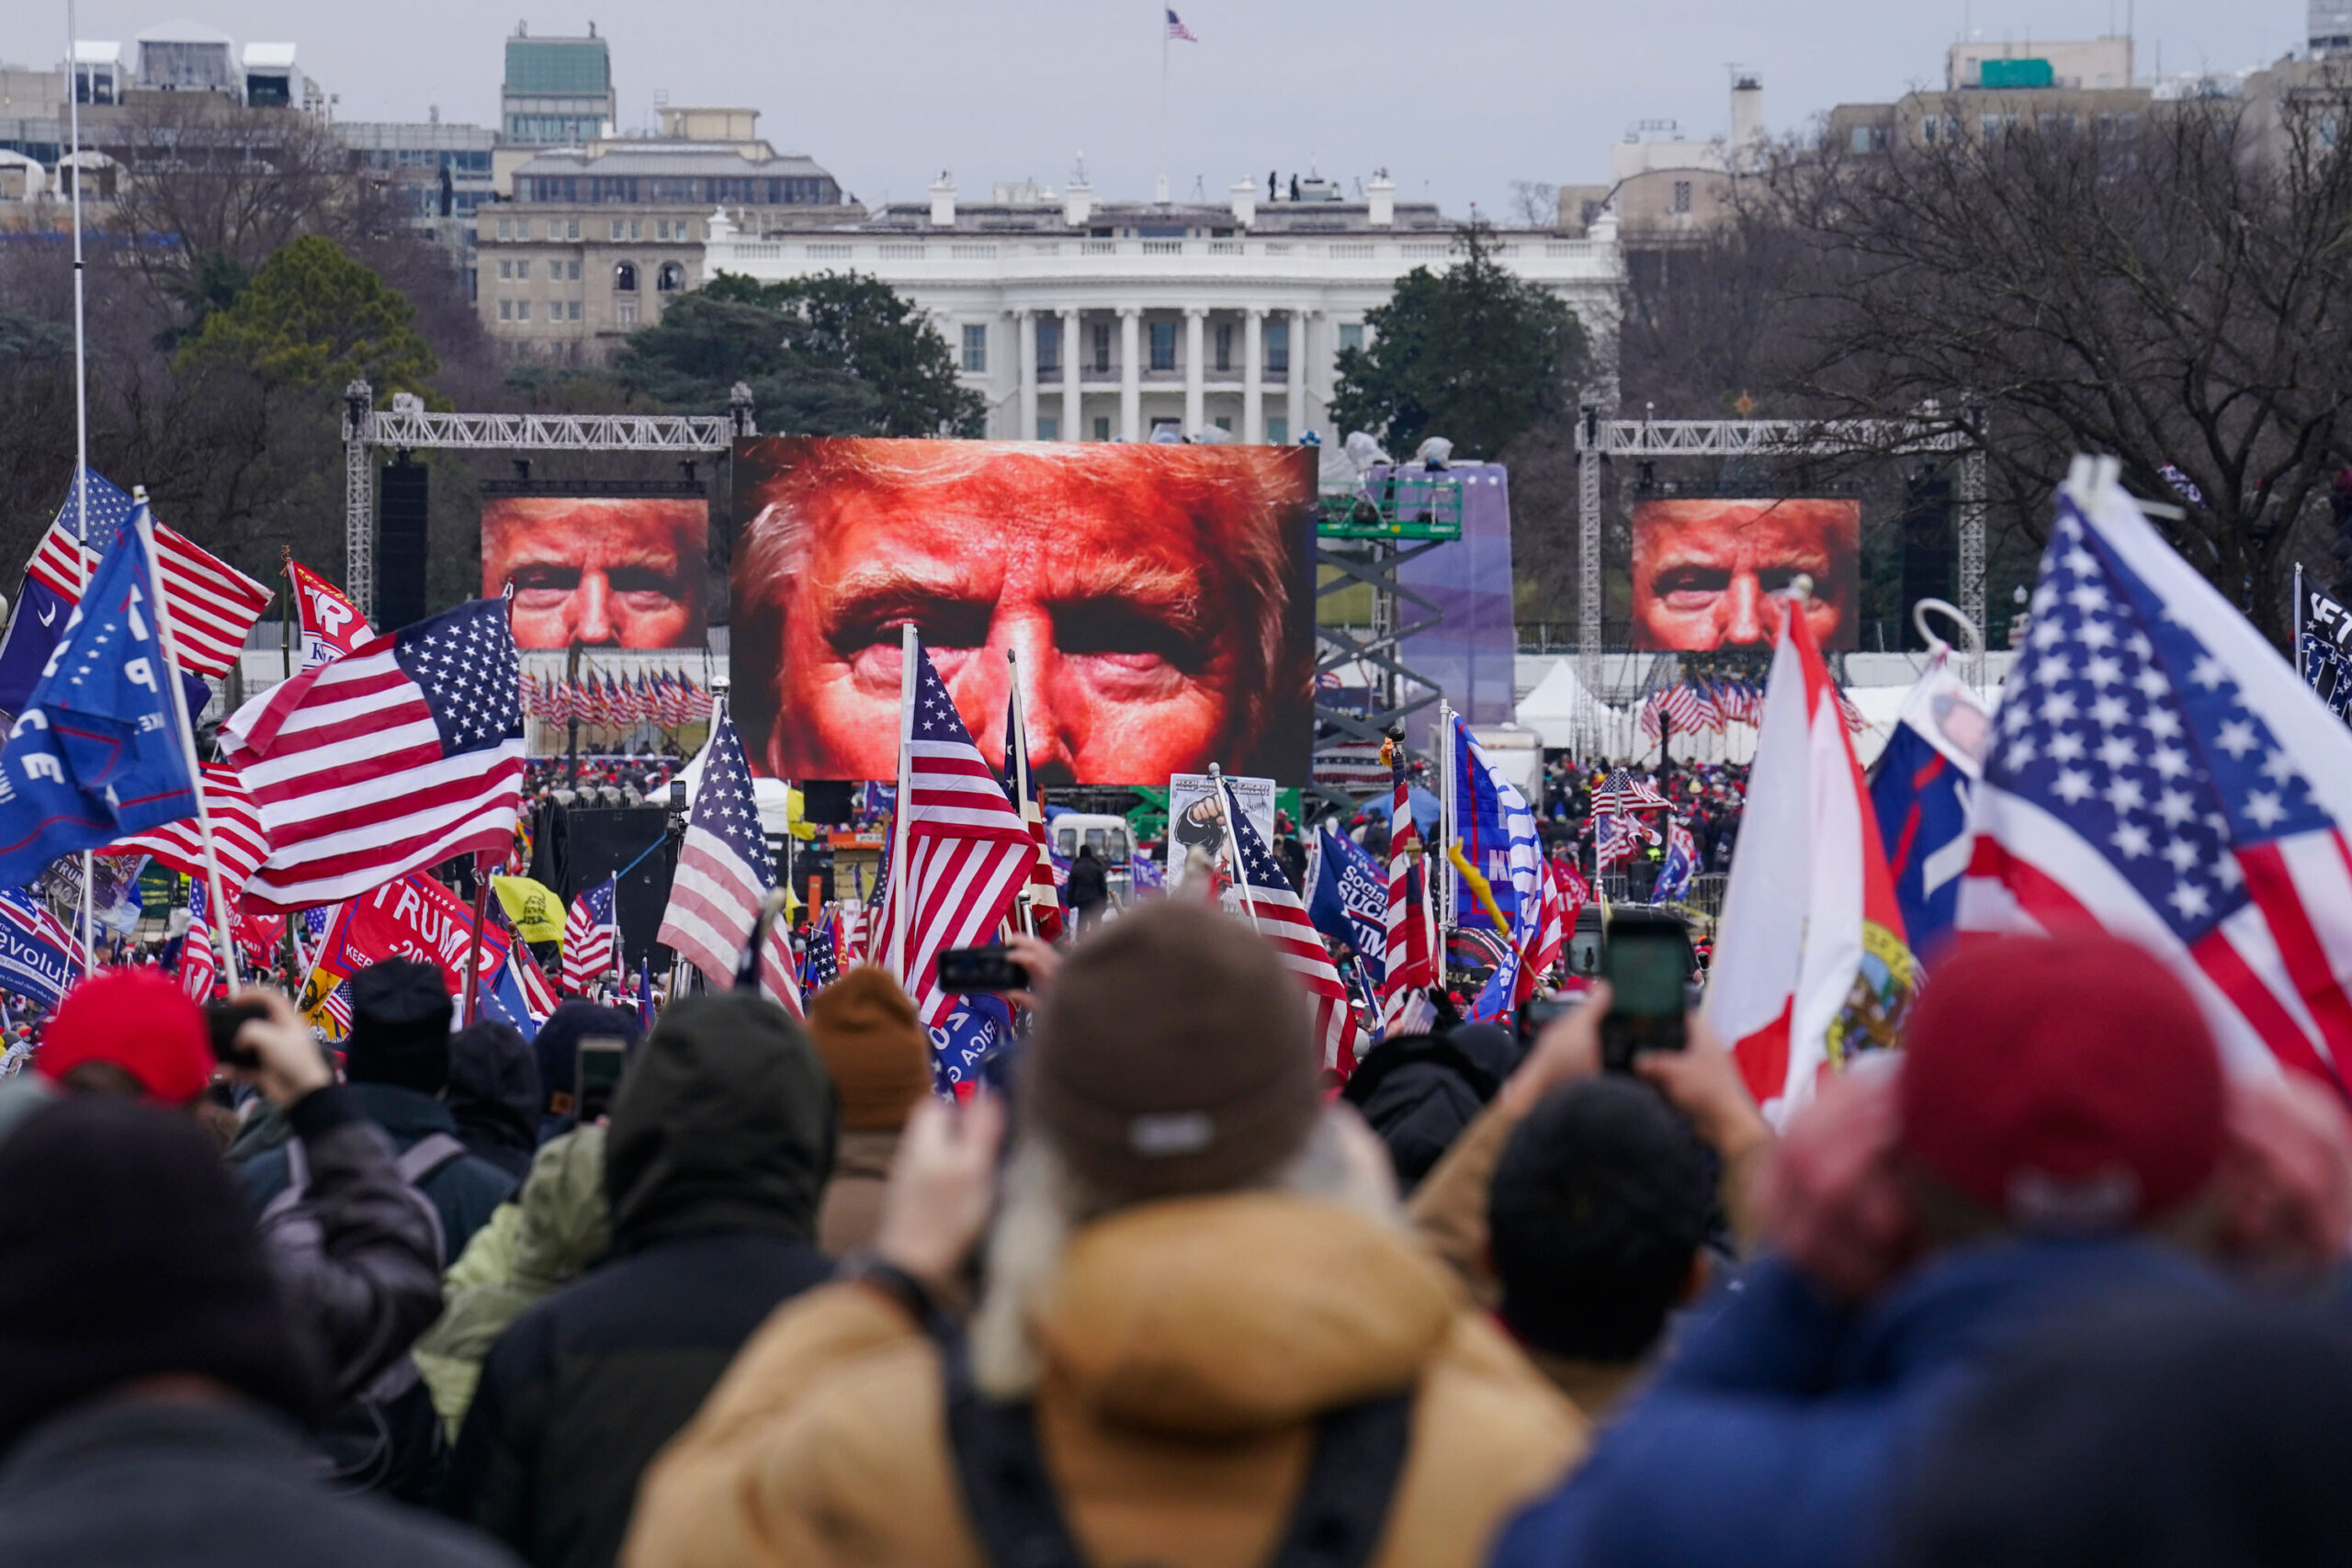 <i>John Minchillo/AP</i><br/>Local police in Washington warned their law enforcement partner agencies a day before the January 6 pro-Trump rally that there were social media reports urging attendees to